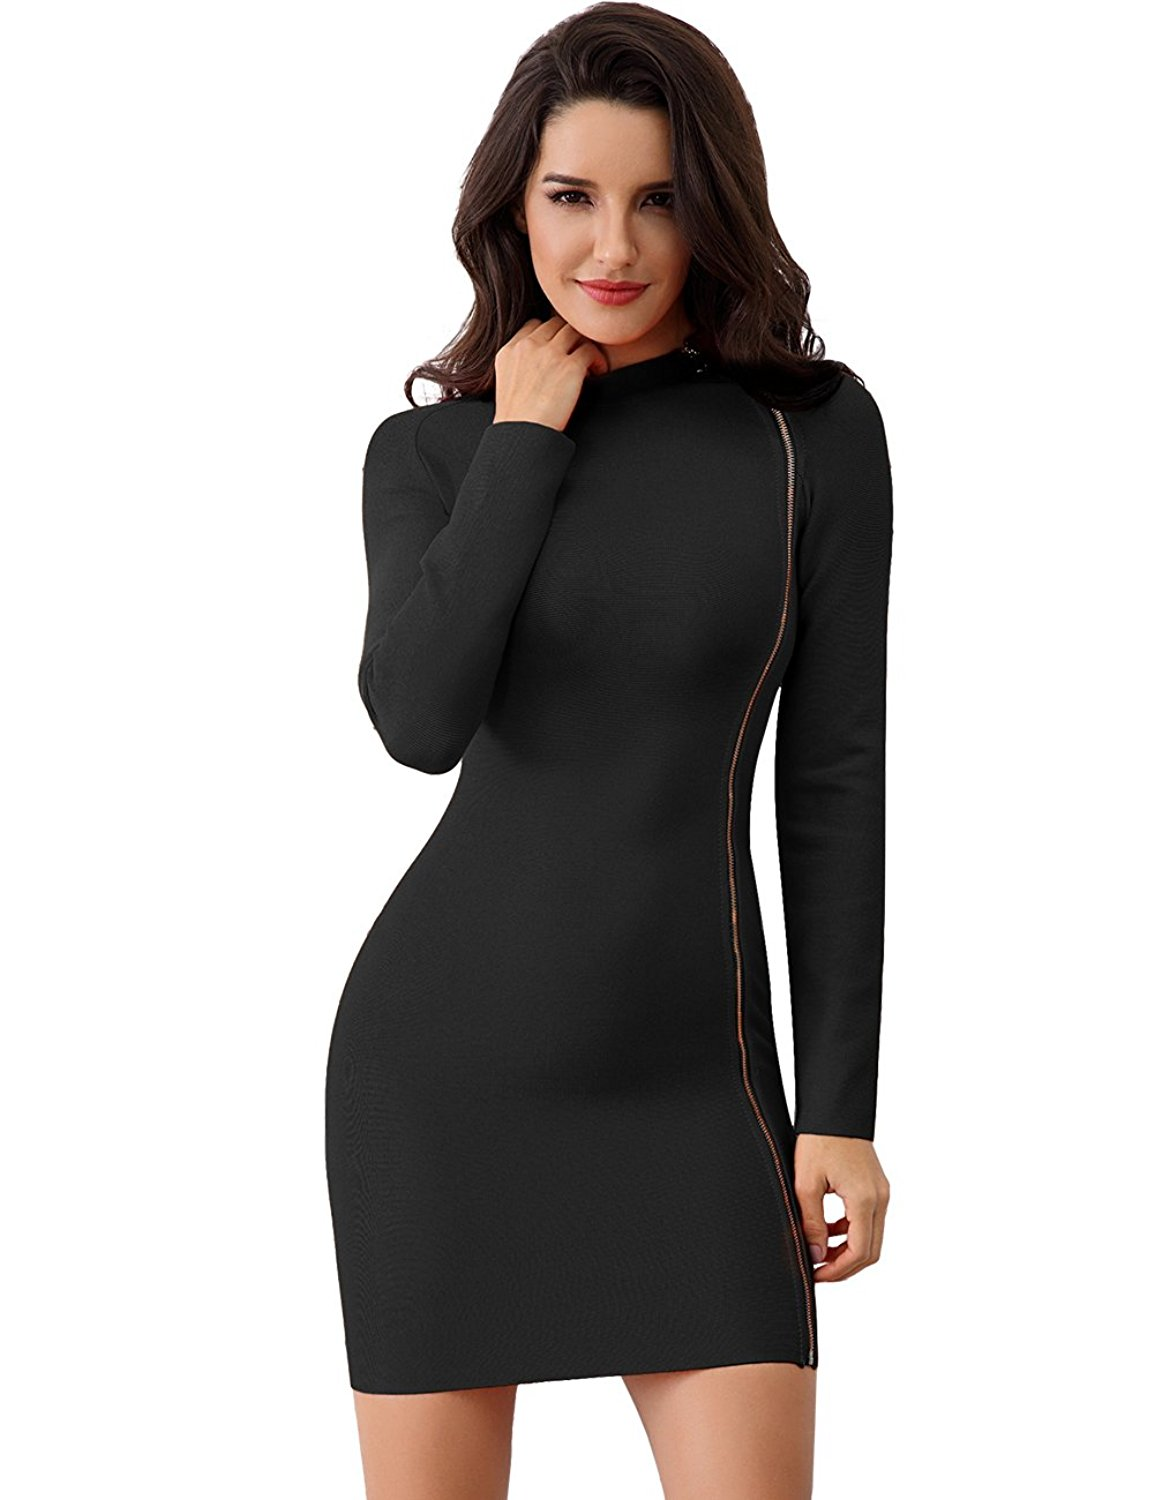 84e06a06b81 Get Quotations · Miss Water Bandage-Dress-Rayon Stretchy Tight,Bodycon Mini  Hot Tight Party Dress